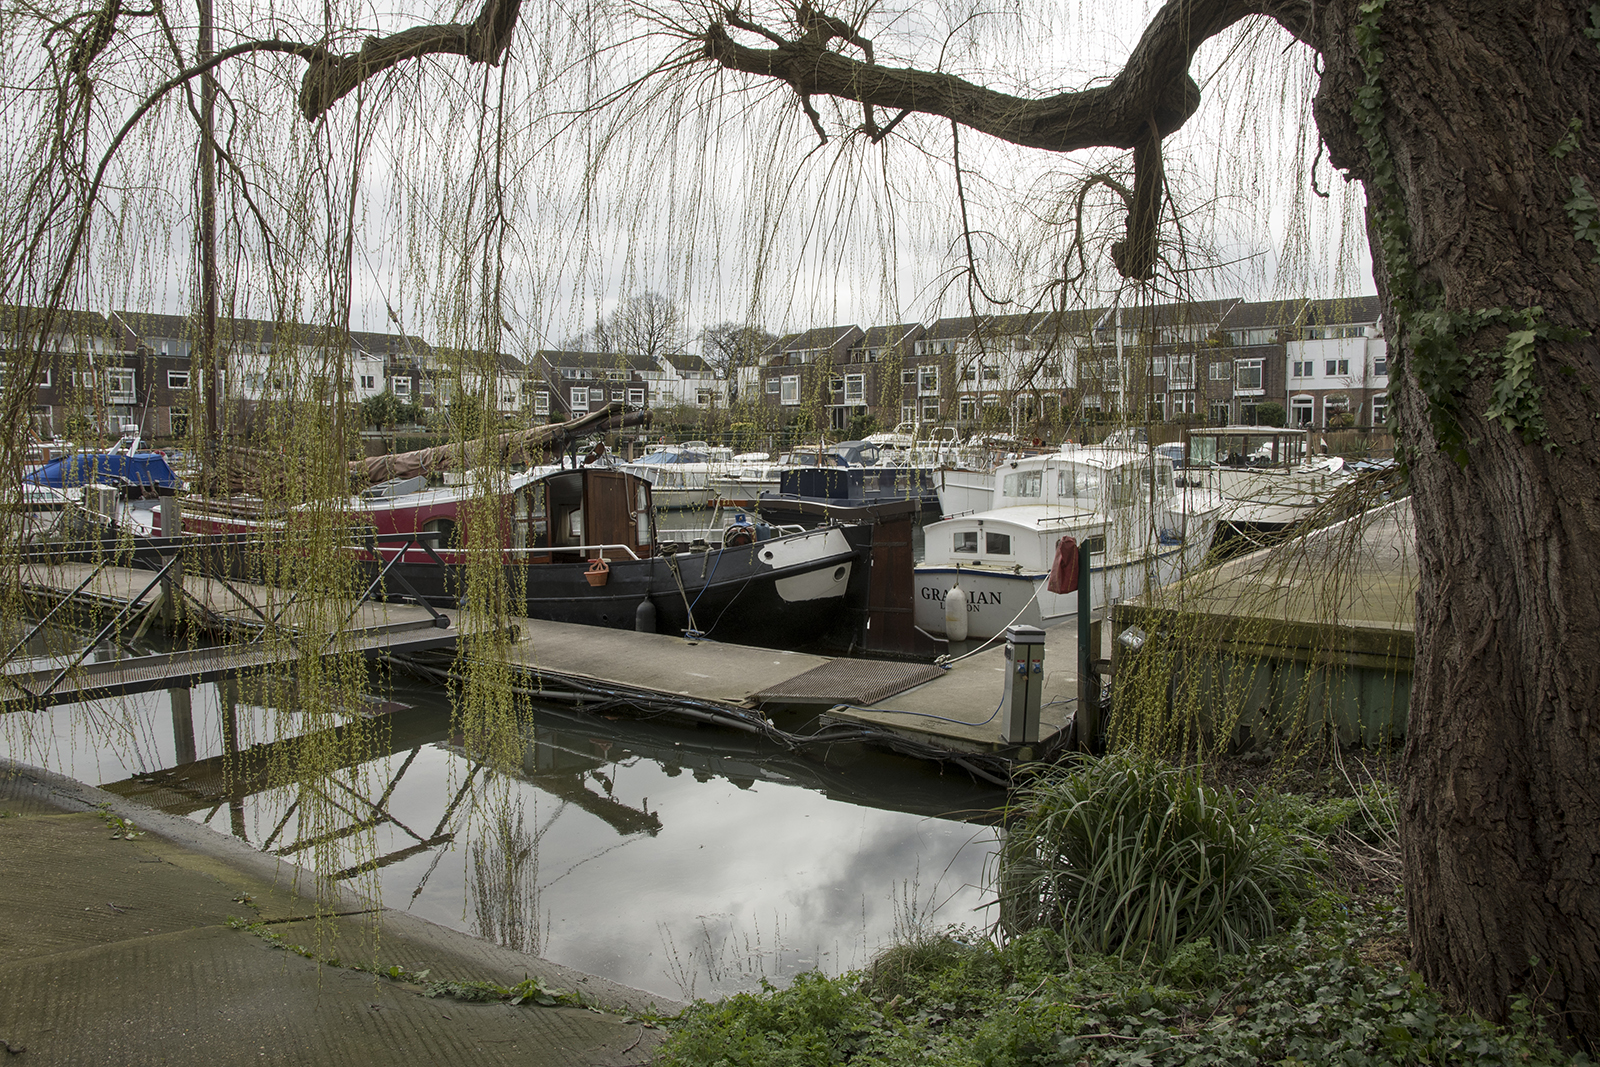 20170308_Hammersmith-and-Fulham_Chiswick-Quay_Landscape_Winter_Boats-in-the-Basin